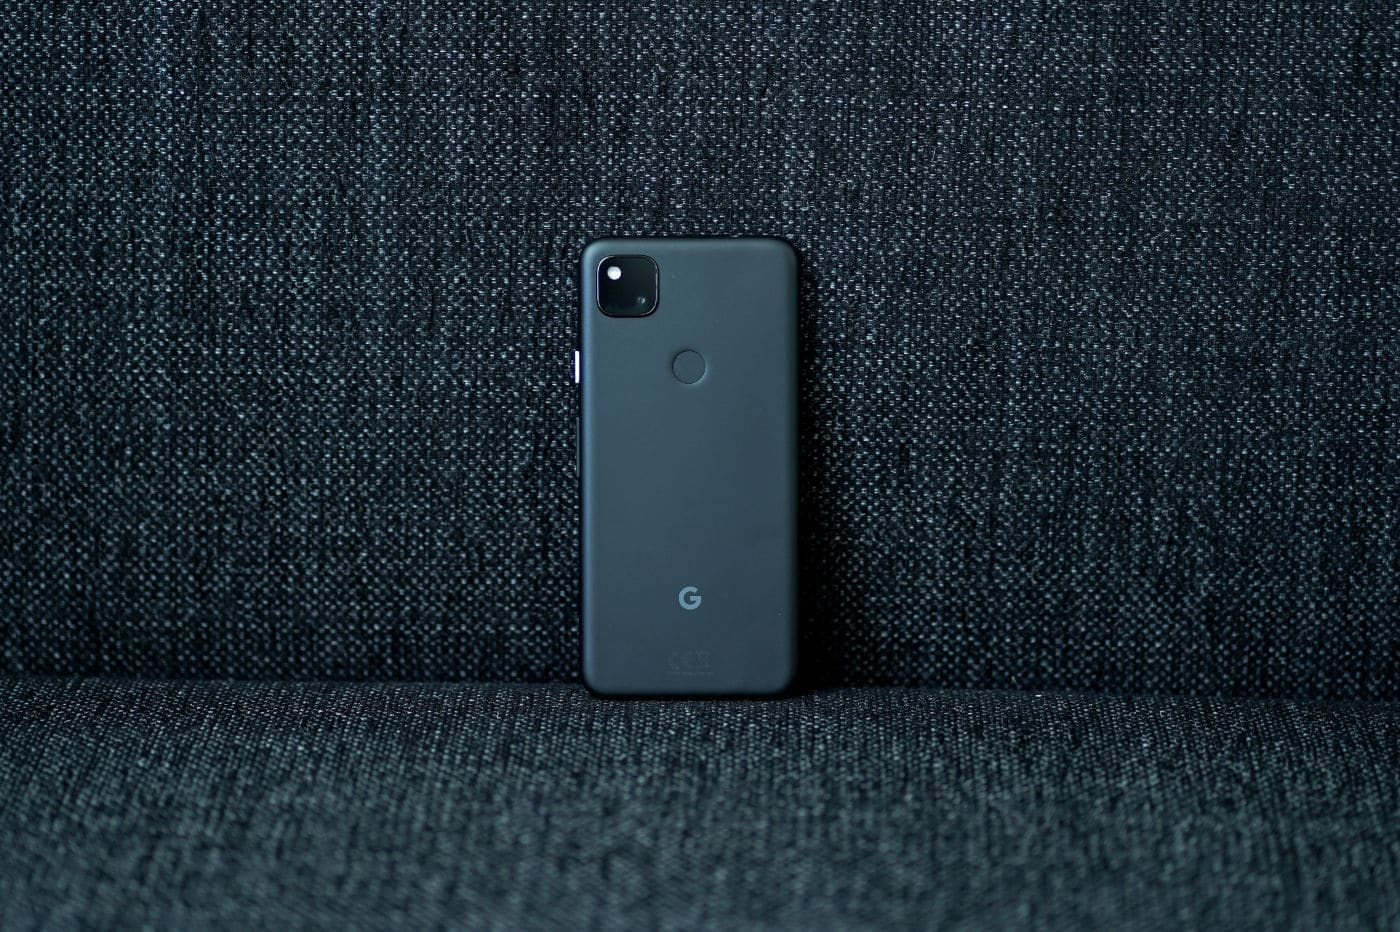 Gabari Pixel 4a - Google Pixel 4a price in Nigeria, review, and full specs